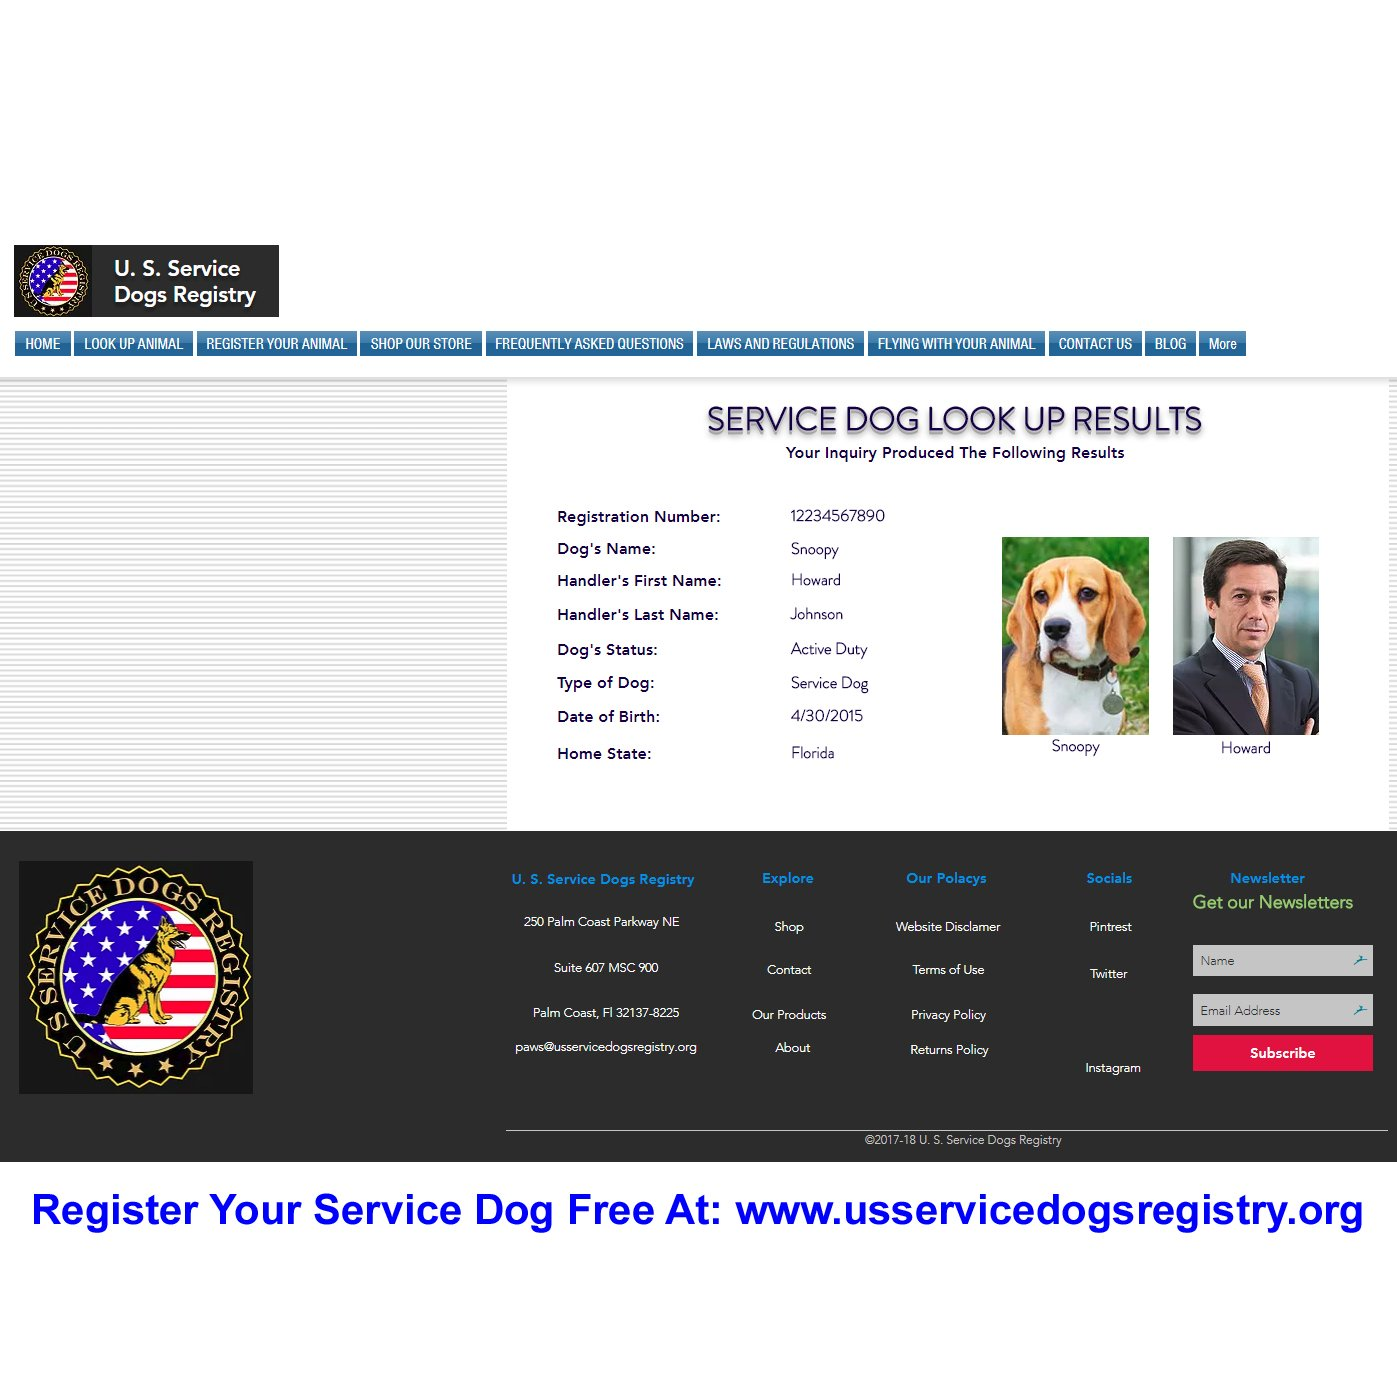 Just 4 Paws Custom Holographic QR Code Emotional Support Dog ID Card with Registration to Service Dogs Registry with Strap - Portrait Style by Just 4 Paws (Image #6)